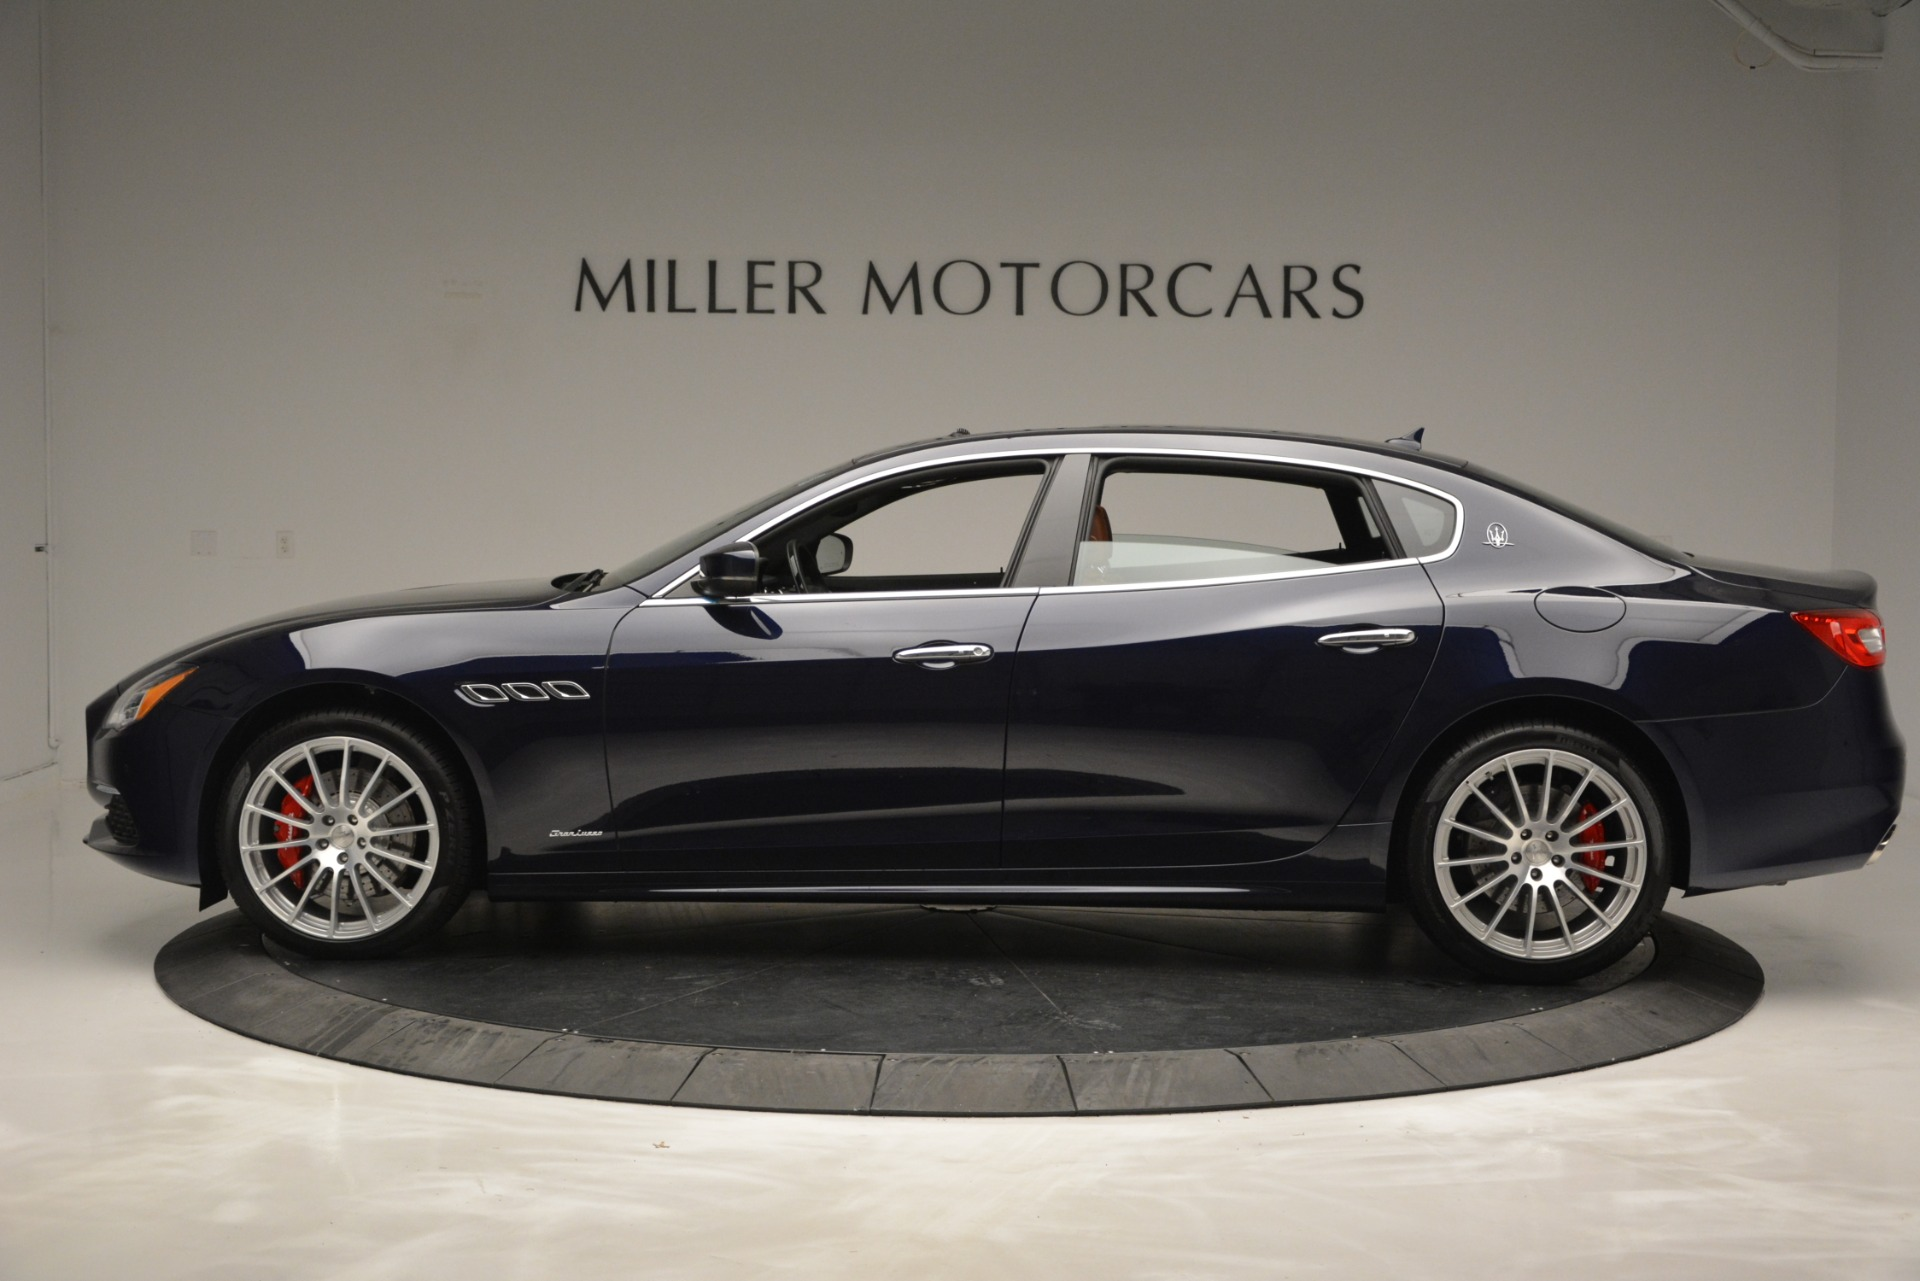 New 2019 Maserati Quattroporte S Q4 GranLusso For Sale In Greenwich, CT 2620_p3